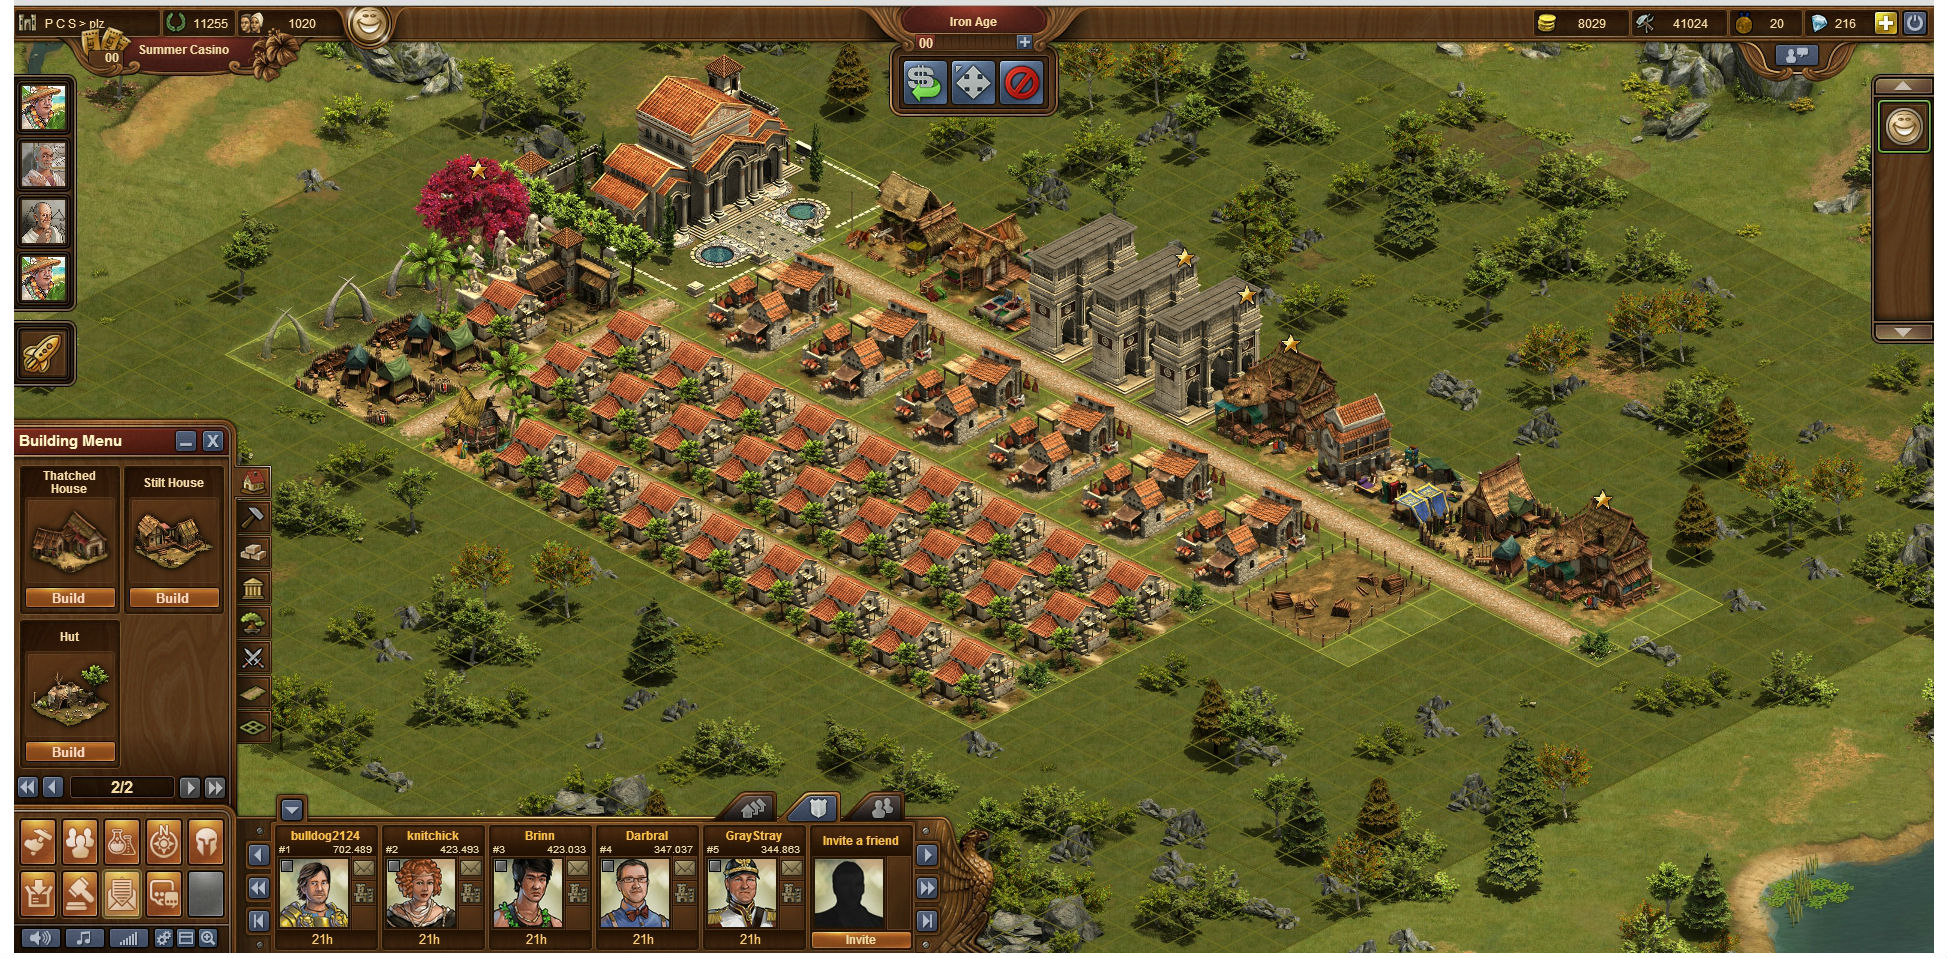 Image - FOE build.jpg | Forge of Empires Wiki | FANDOM powered by ...